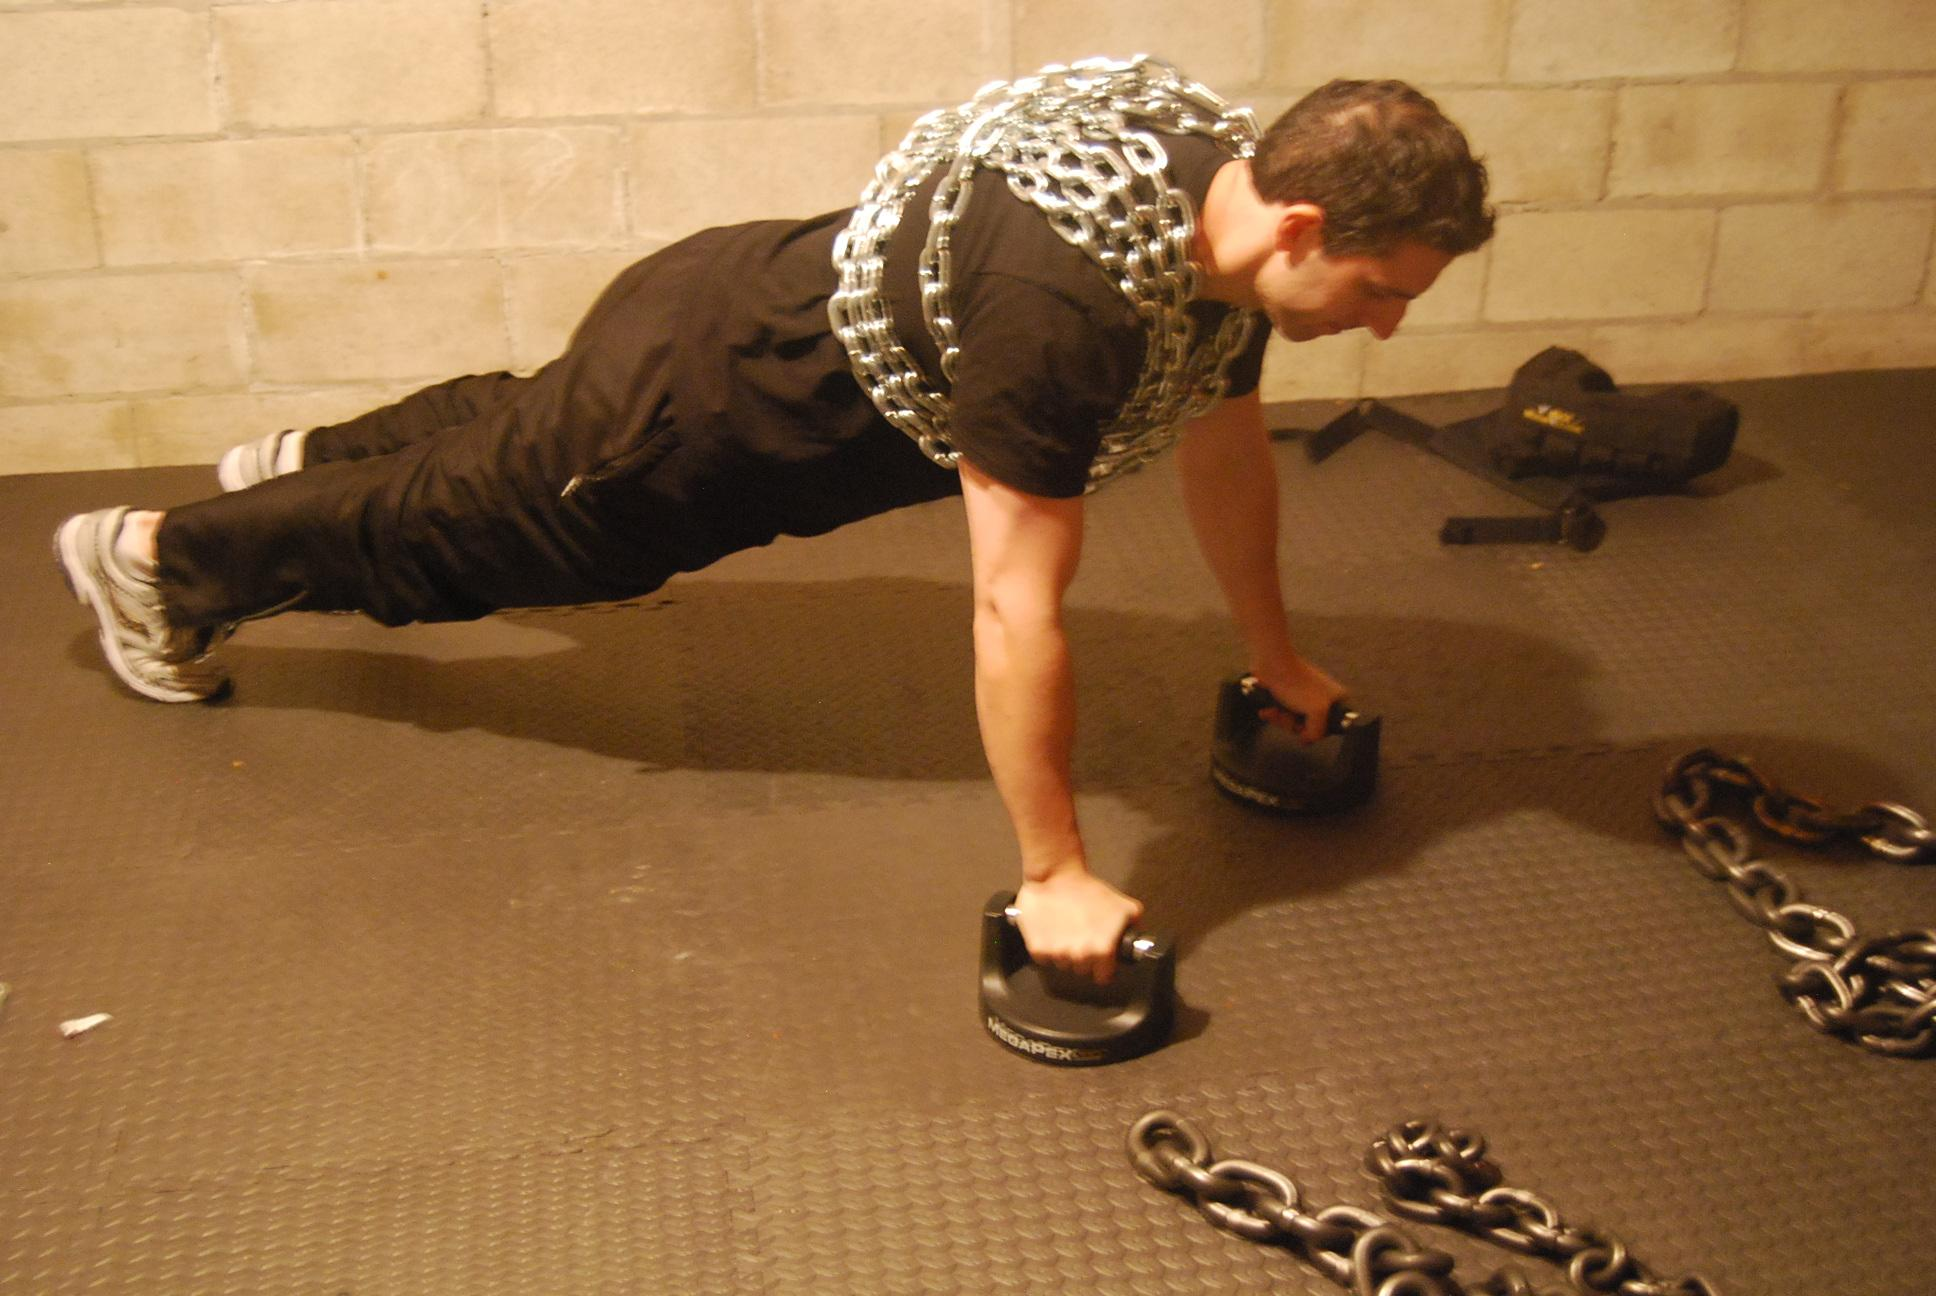 Chain Push Ups – New Adonis Workout in the Making